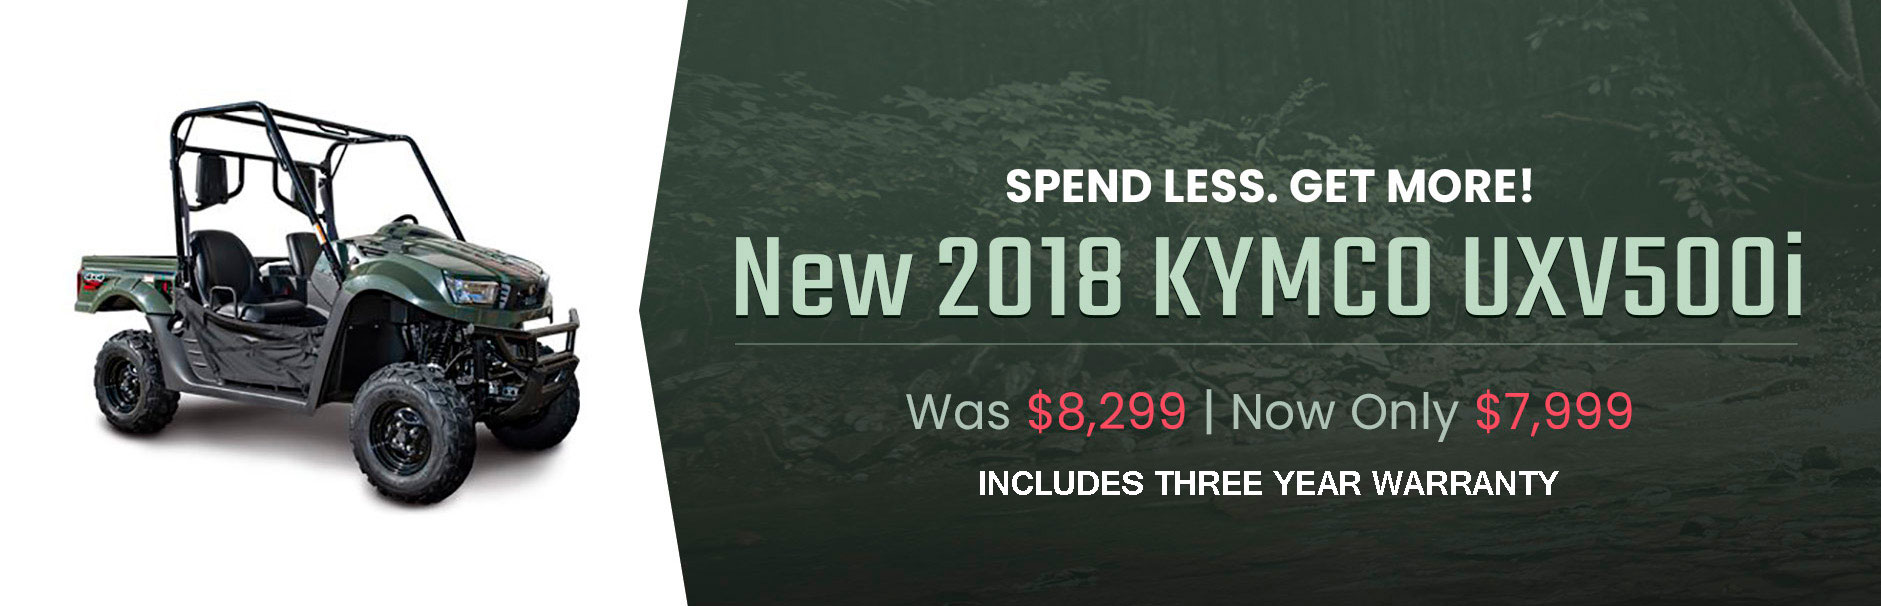 New 2018 KYMCO UXV500i: Was $8,299 | Now only $7,999. Click here to view the models.